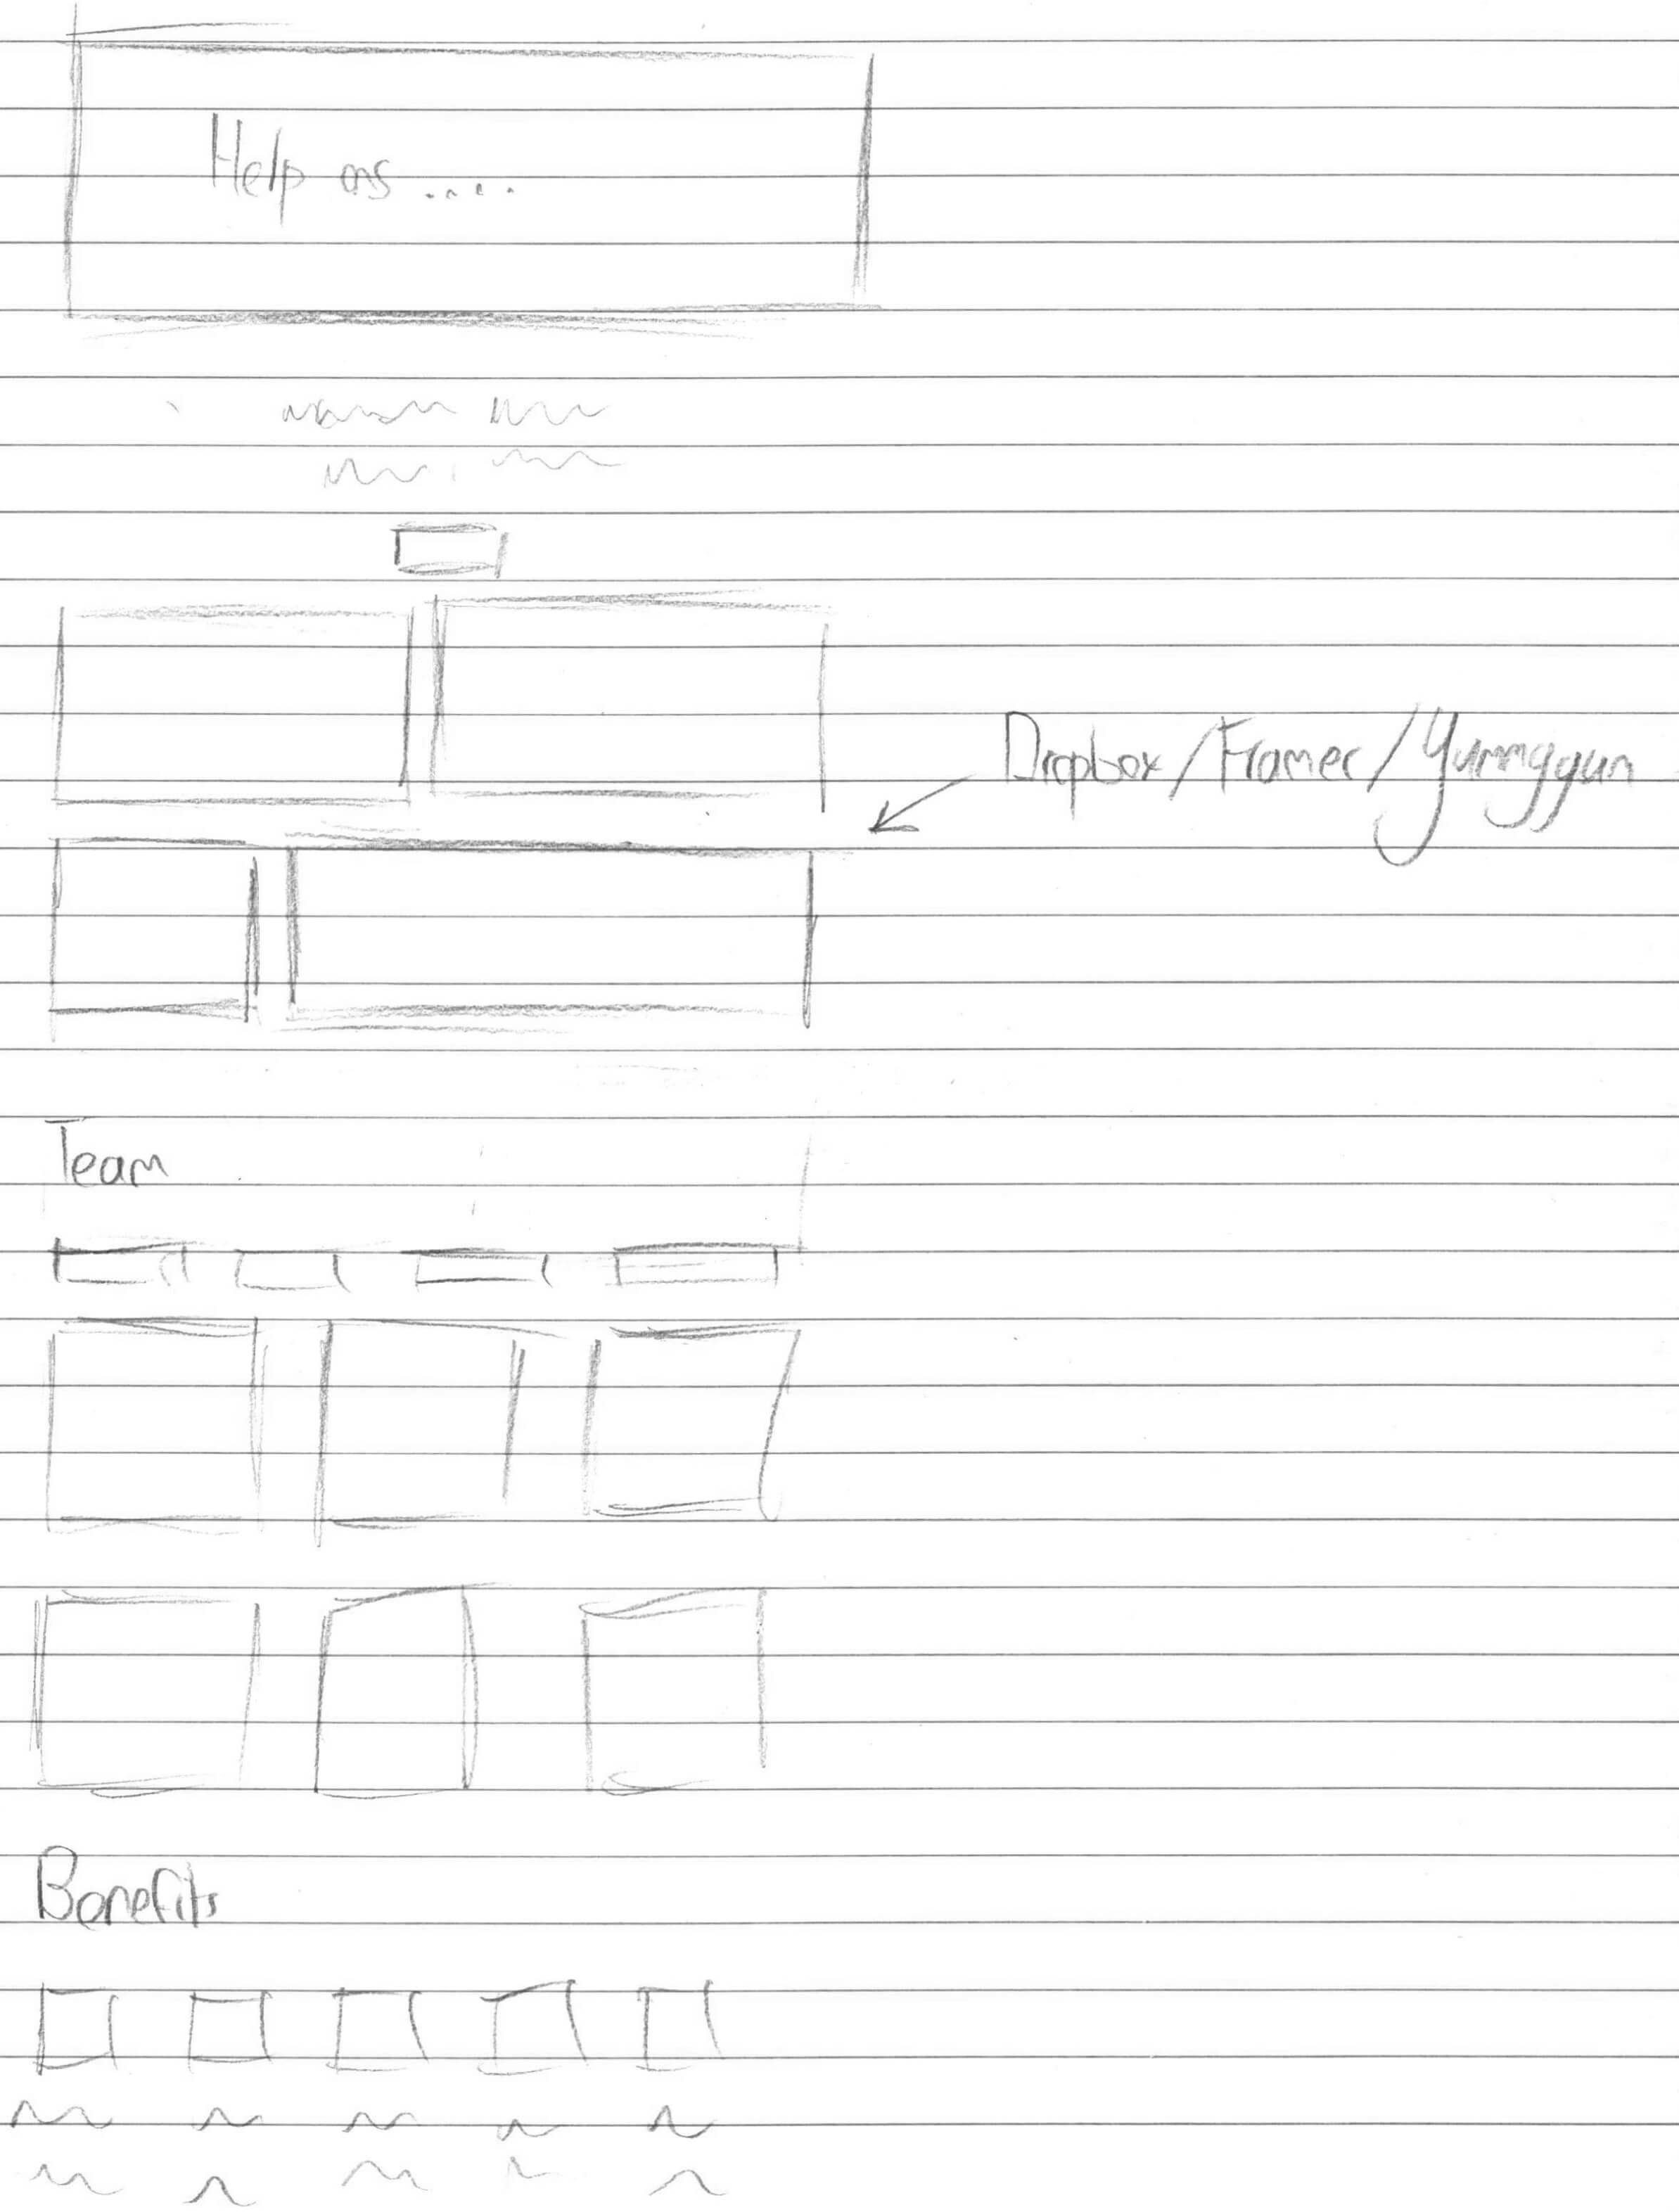 A sketch outlining the possible information architecture and layout of the Careers page